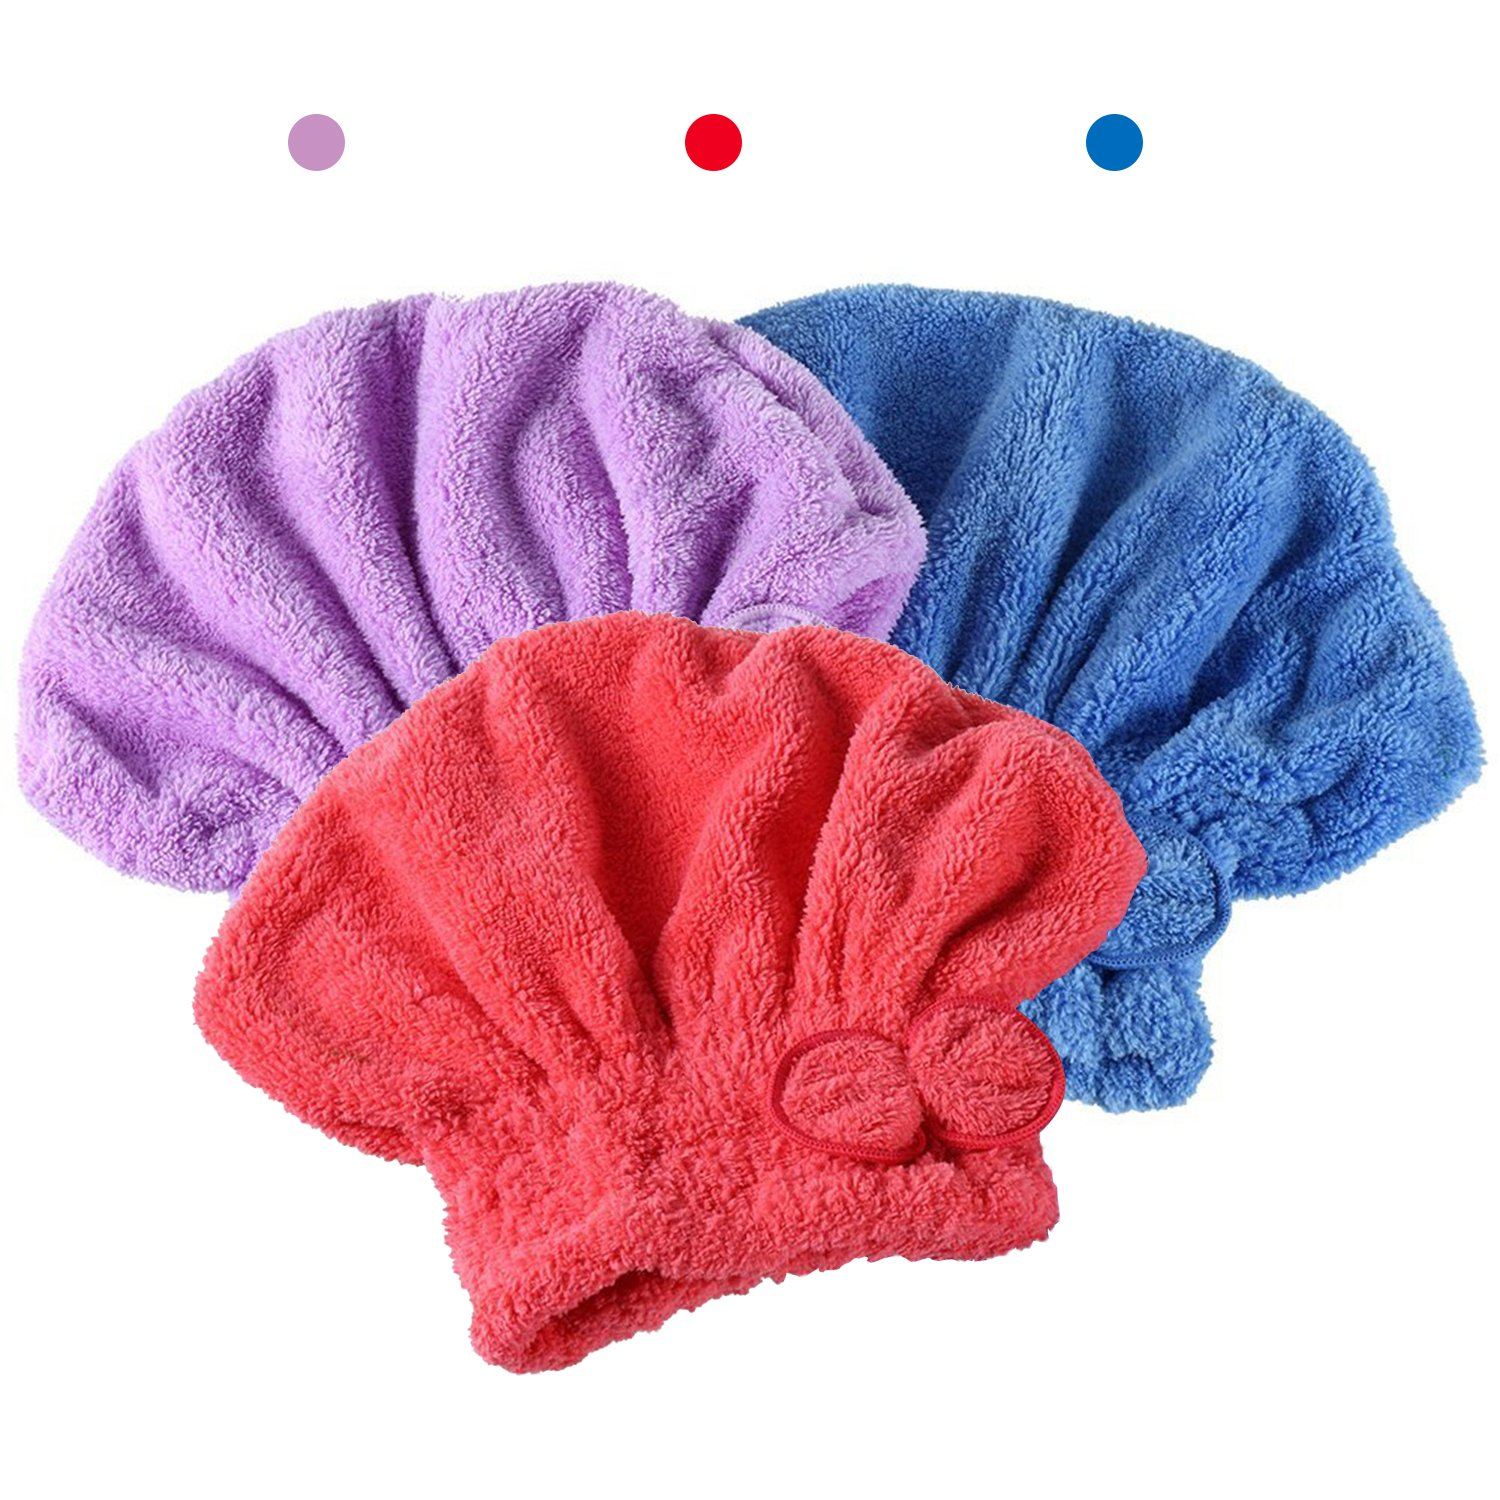 Dee Banna 3Pcs Wet Hair Drying Cap, Hair Drying Towels Ultra Absorbent Microfiber Drying Cap (Red,Blue,Purple) by Dee Banna (Image #2)